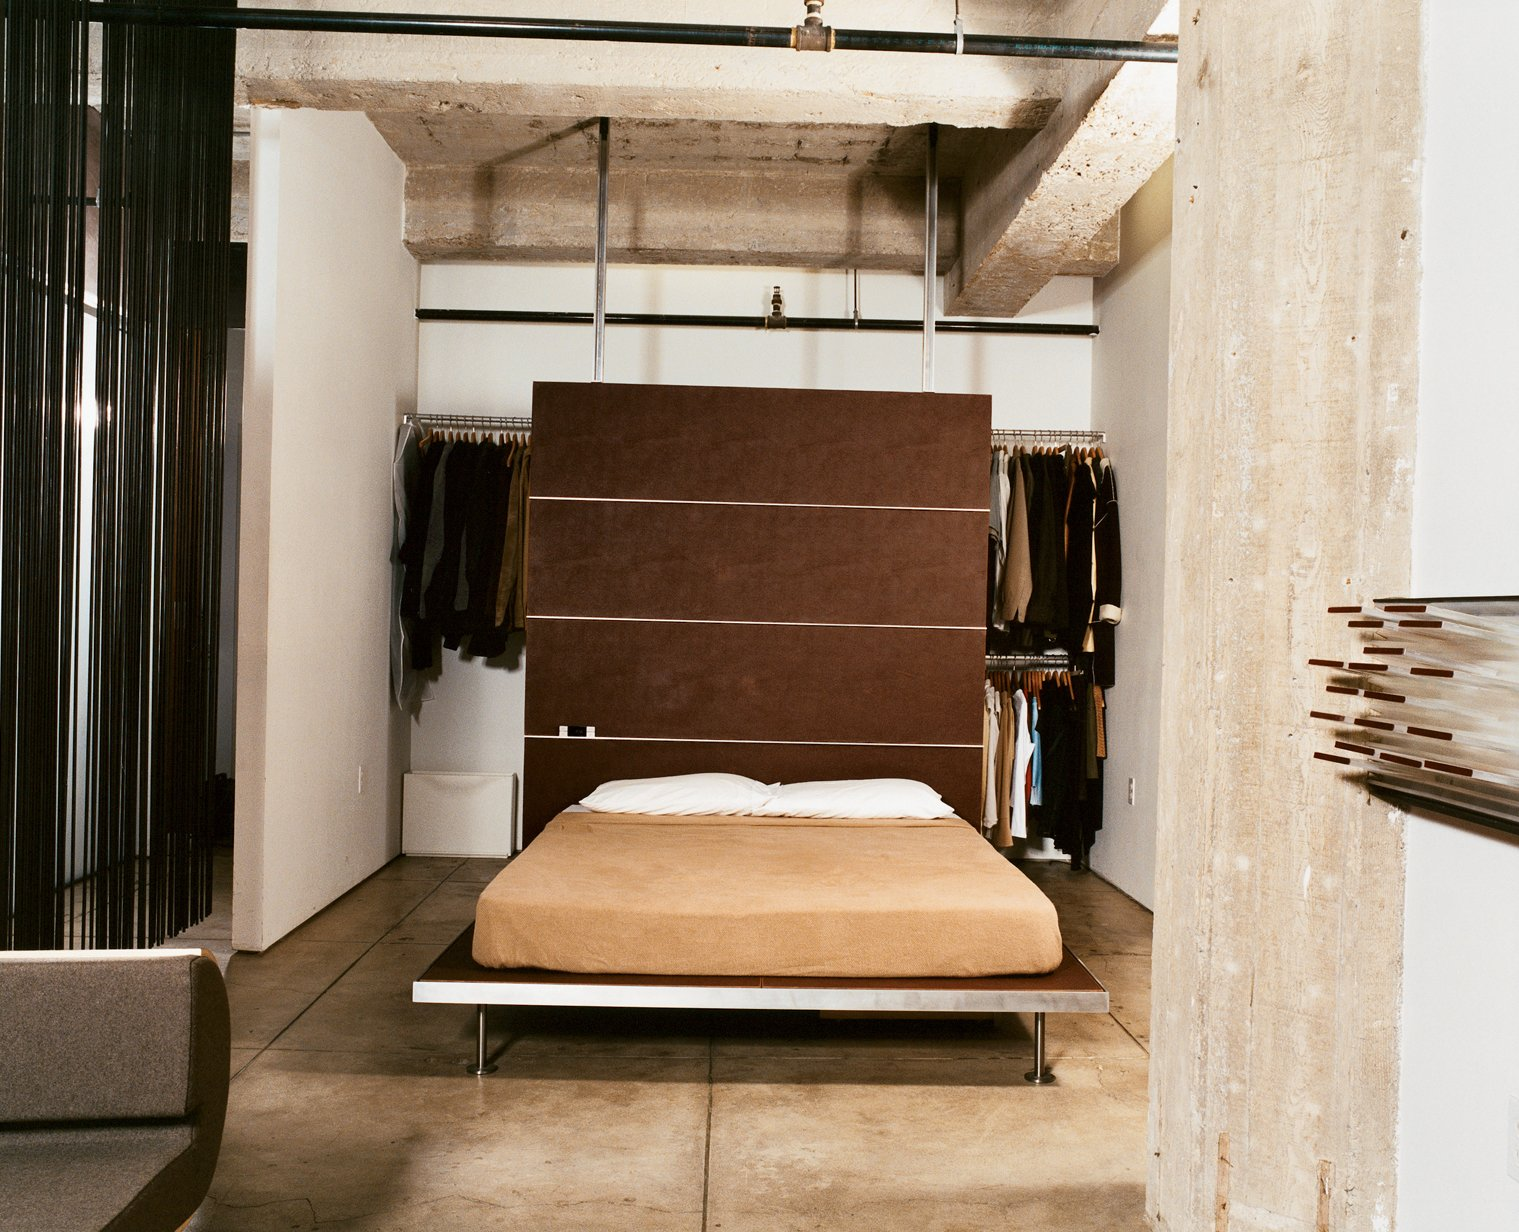 With a push of the sliding door, the bedroom morphs into an extension of the living room, adding much-appreciated square feet during dinner parties and other gatherings. The platform bed and backrest are both Tag Front designs. Tagged: Bedroom, Bed, and Concrete Floor.  Photo 6 of 9 in Cutting Up a Mini Loft in Los Angeles